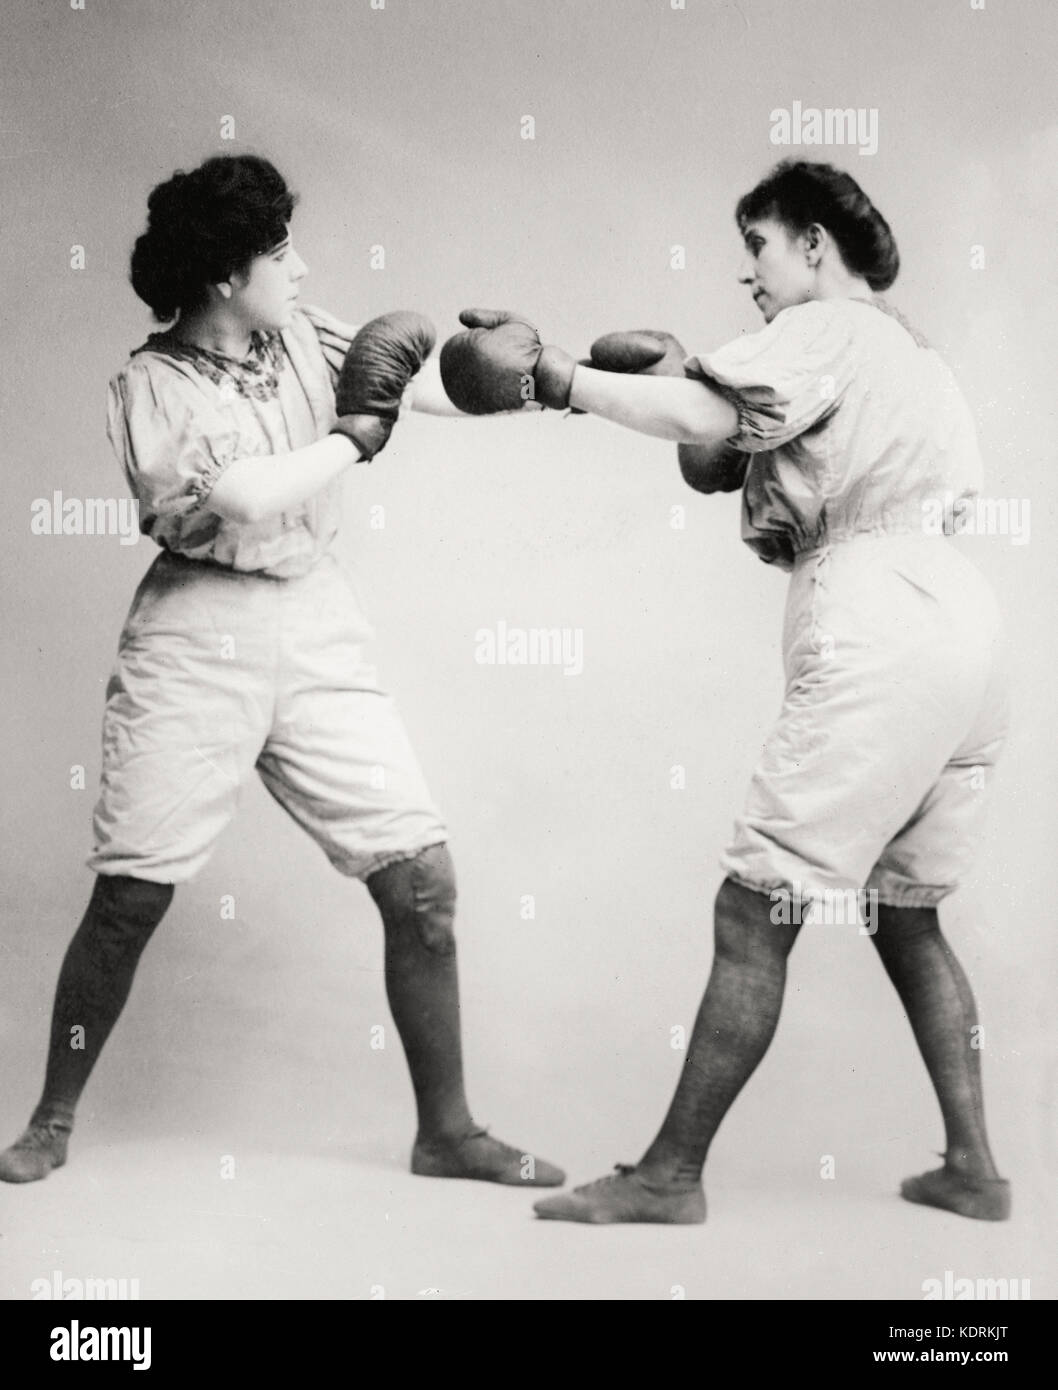 Bennett sisters boxing, circa 1910 - Stock Image